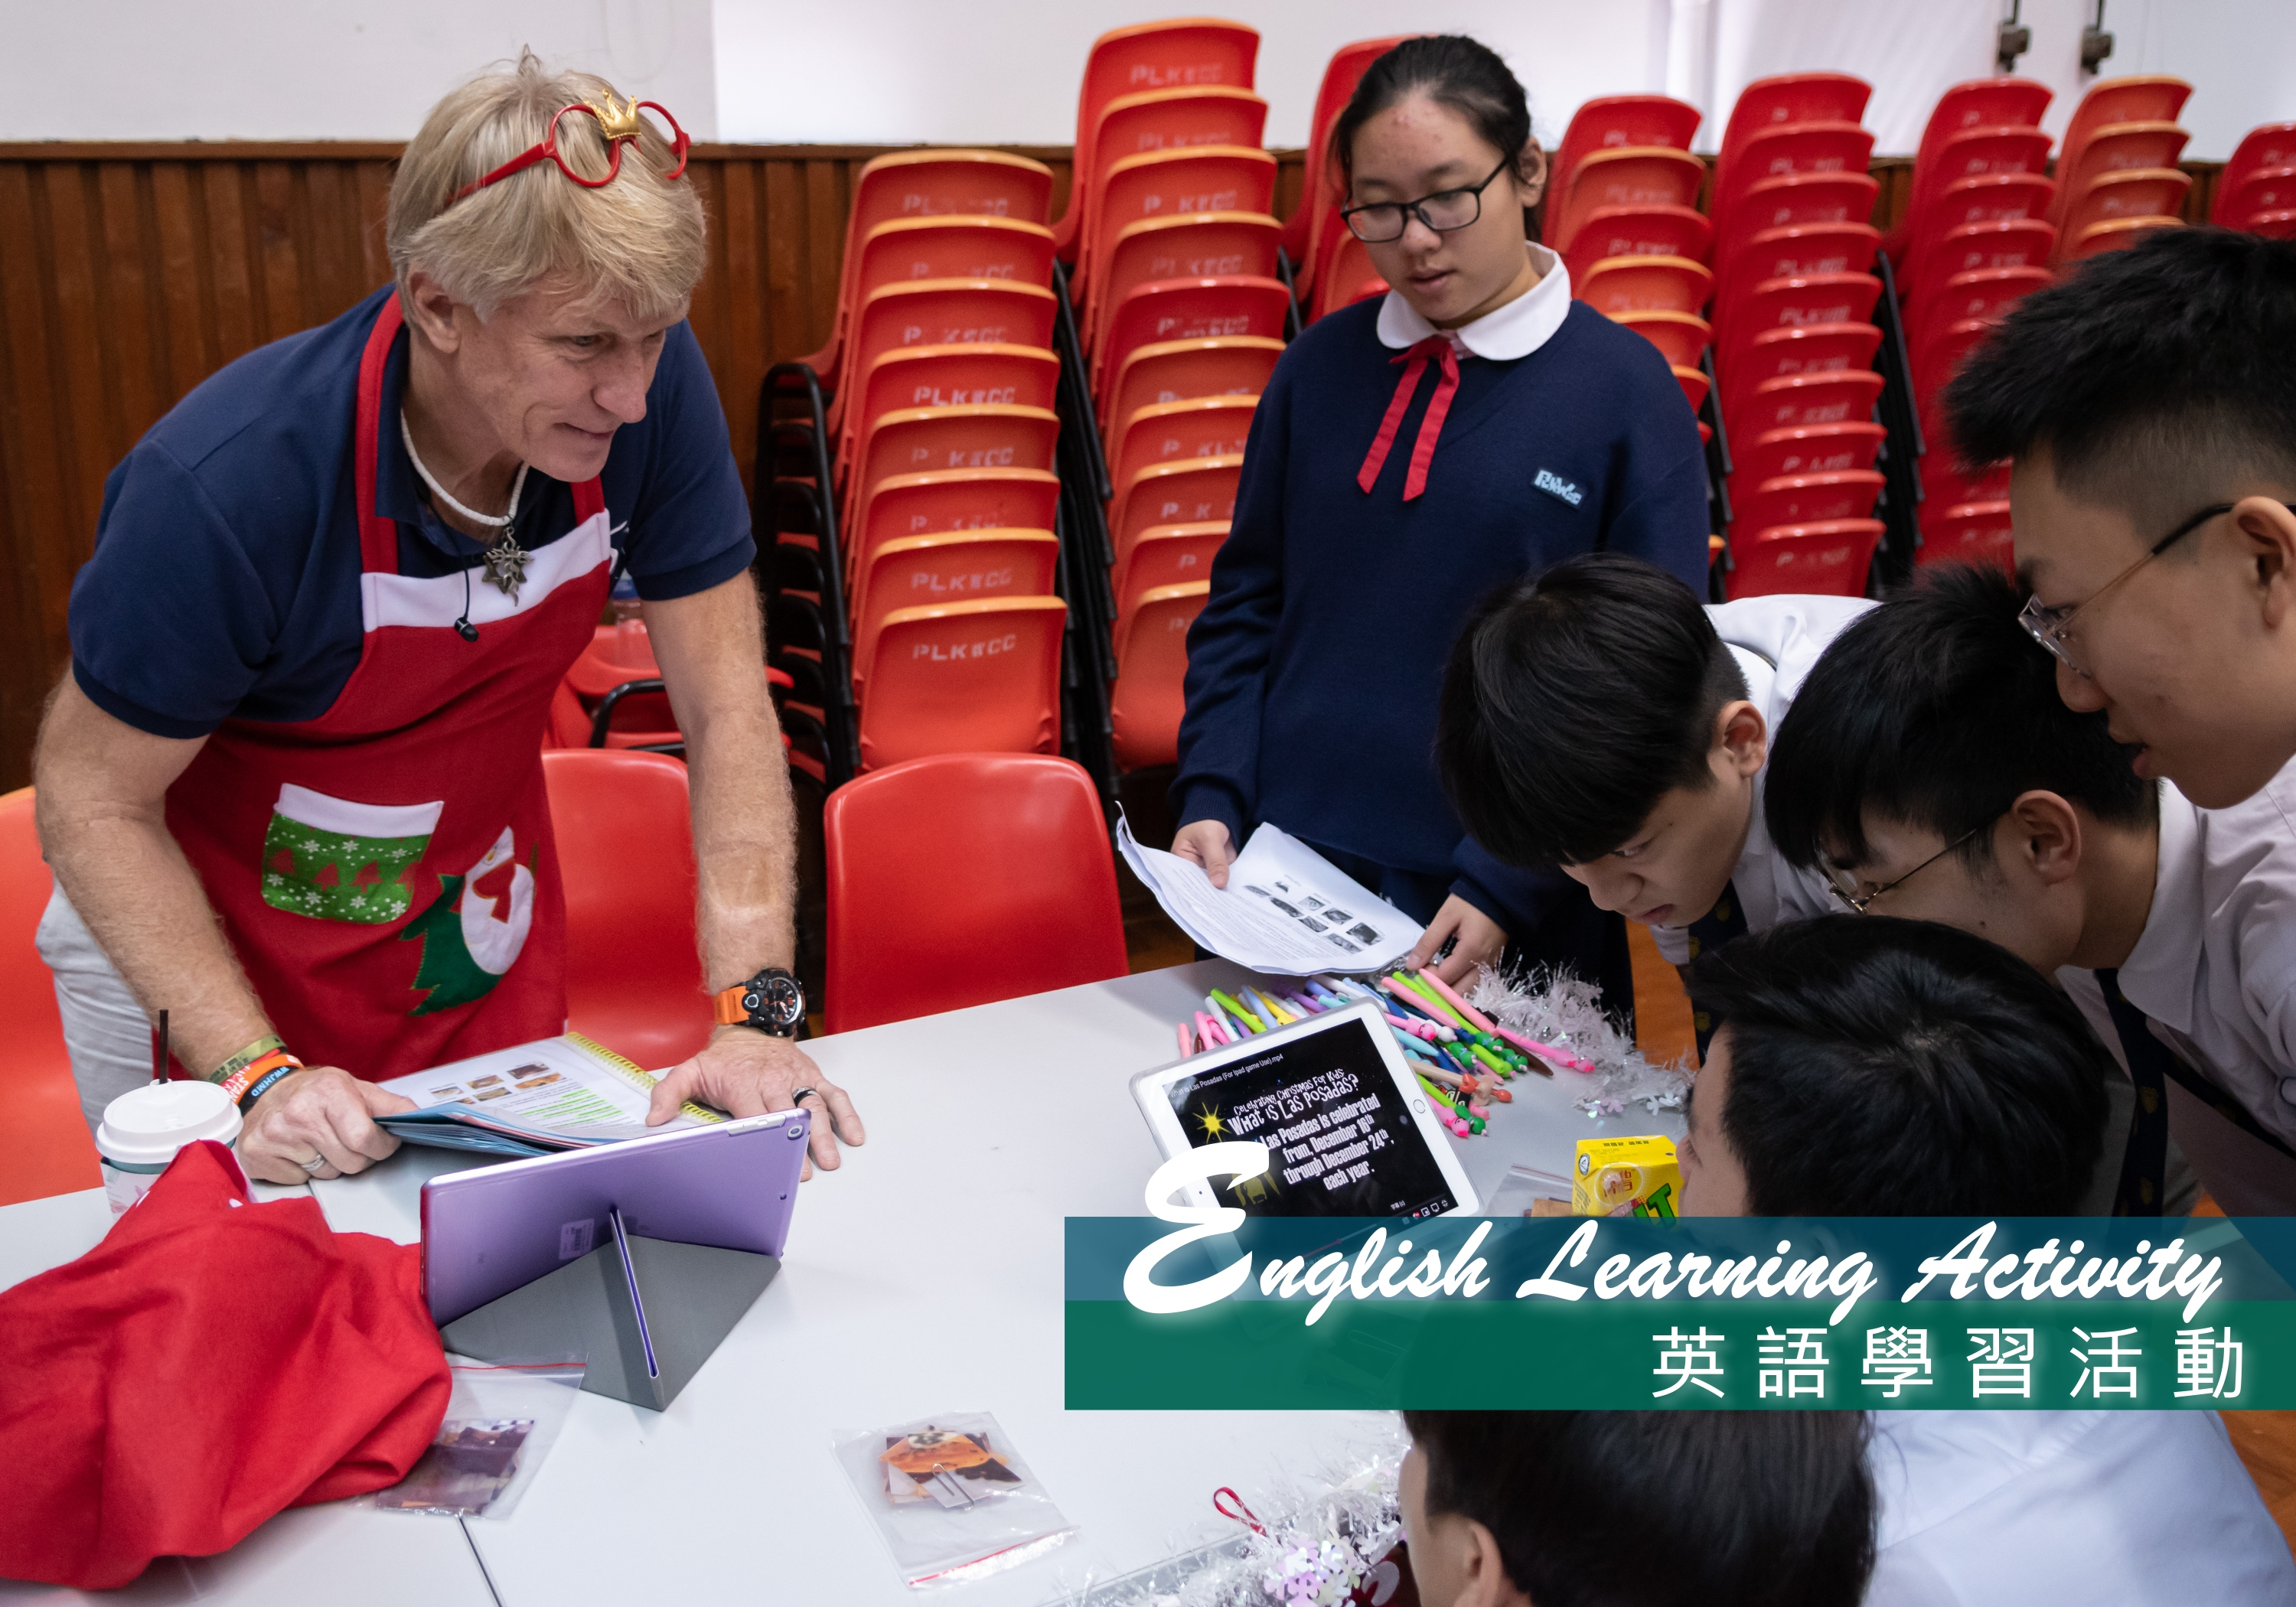 English Learning Activity 英語學習活動_3